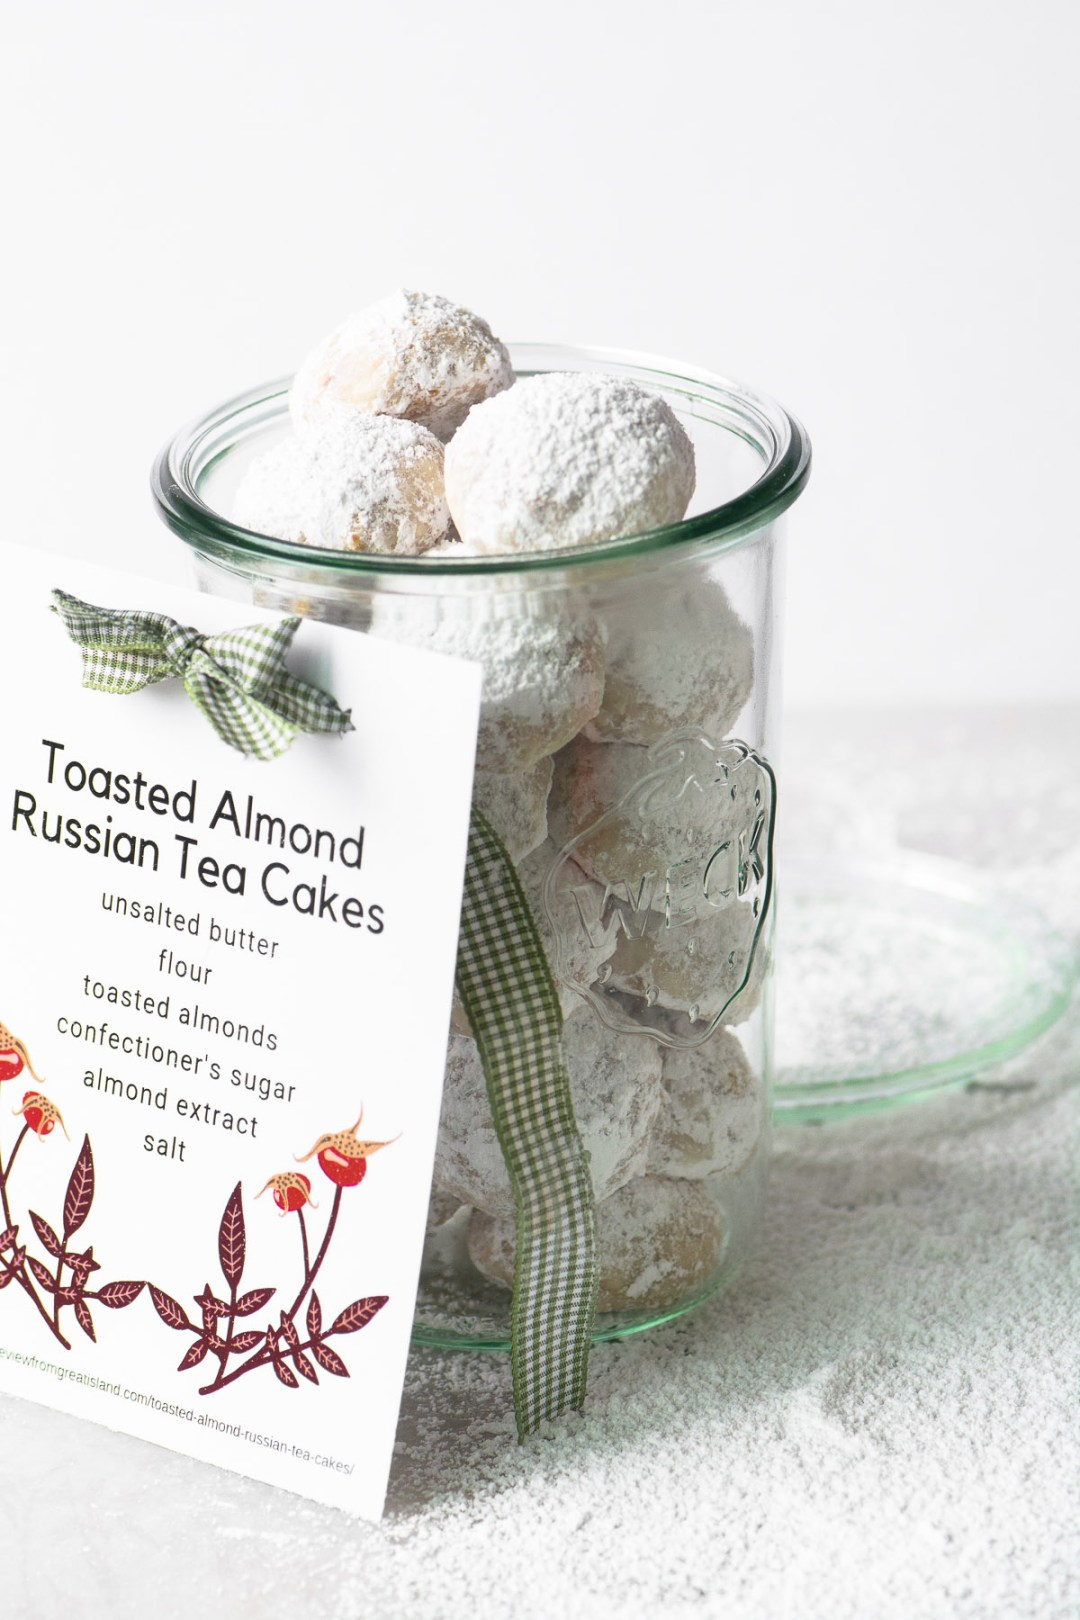 Toasted Almond Russian Tea Cakes in a mason jar with gift tag